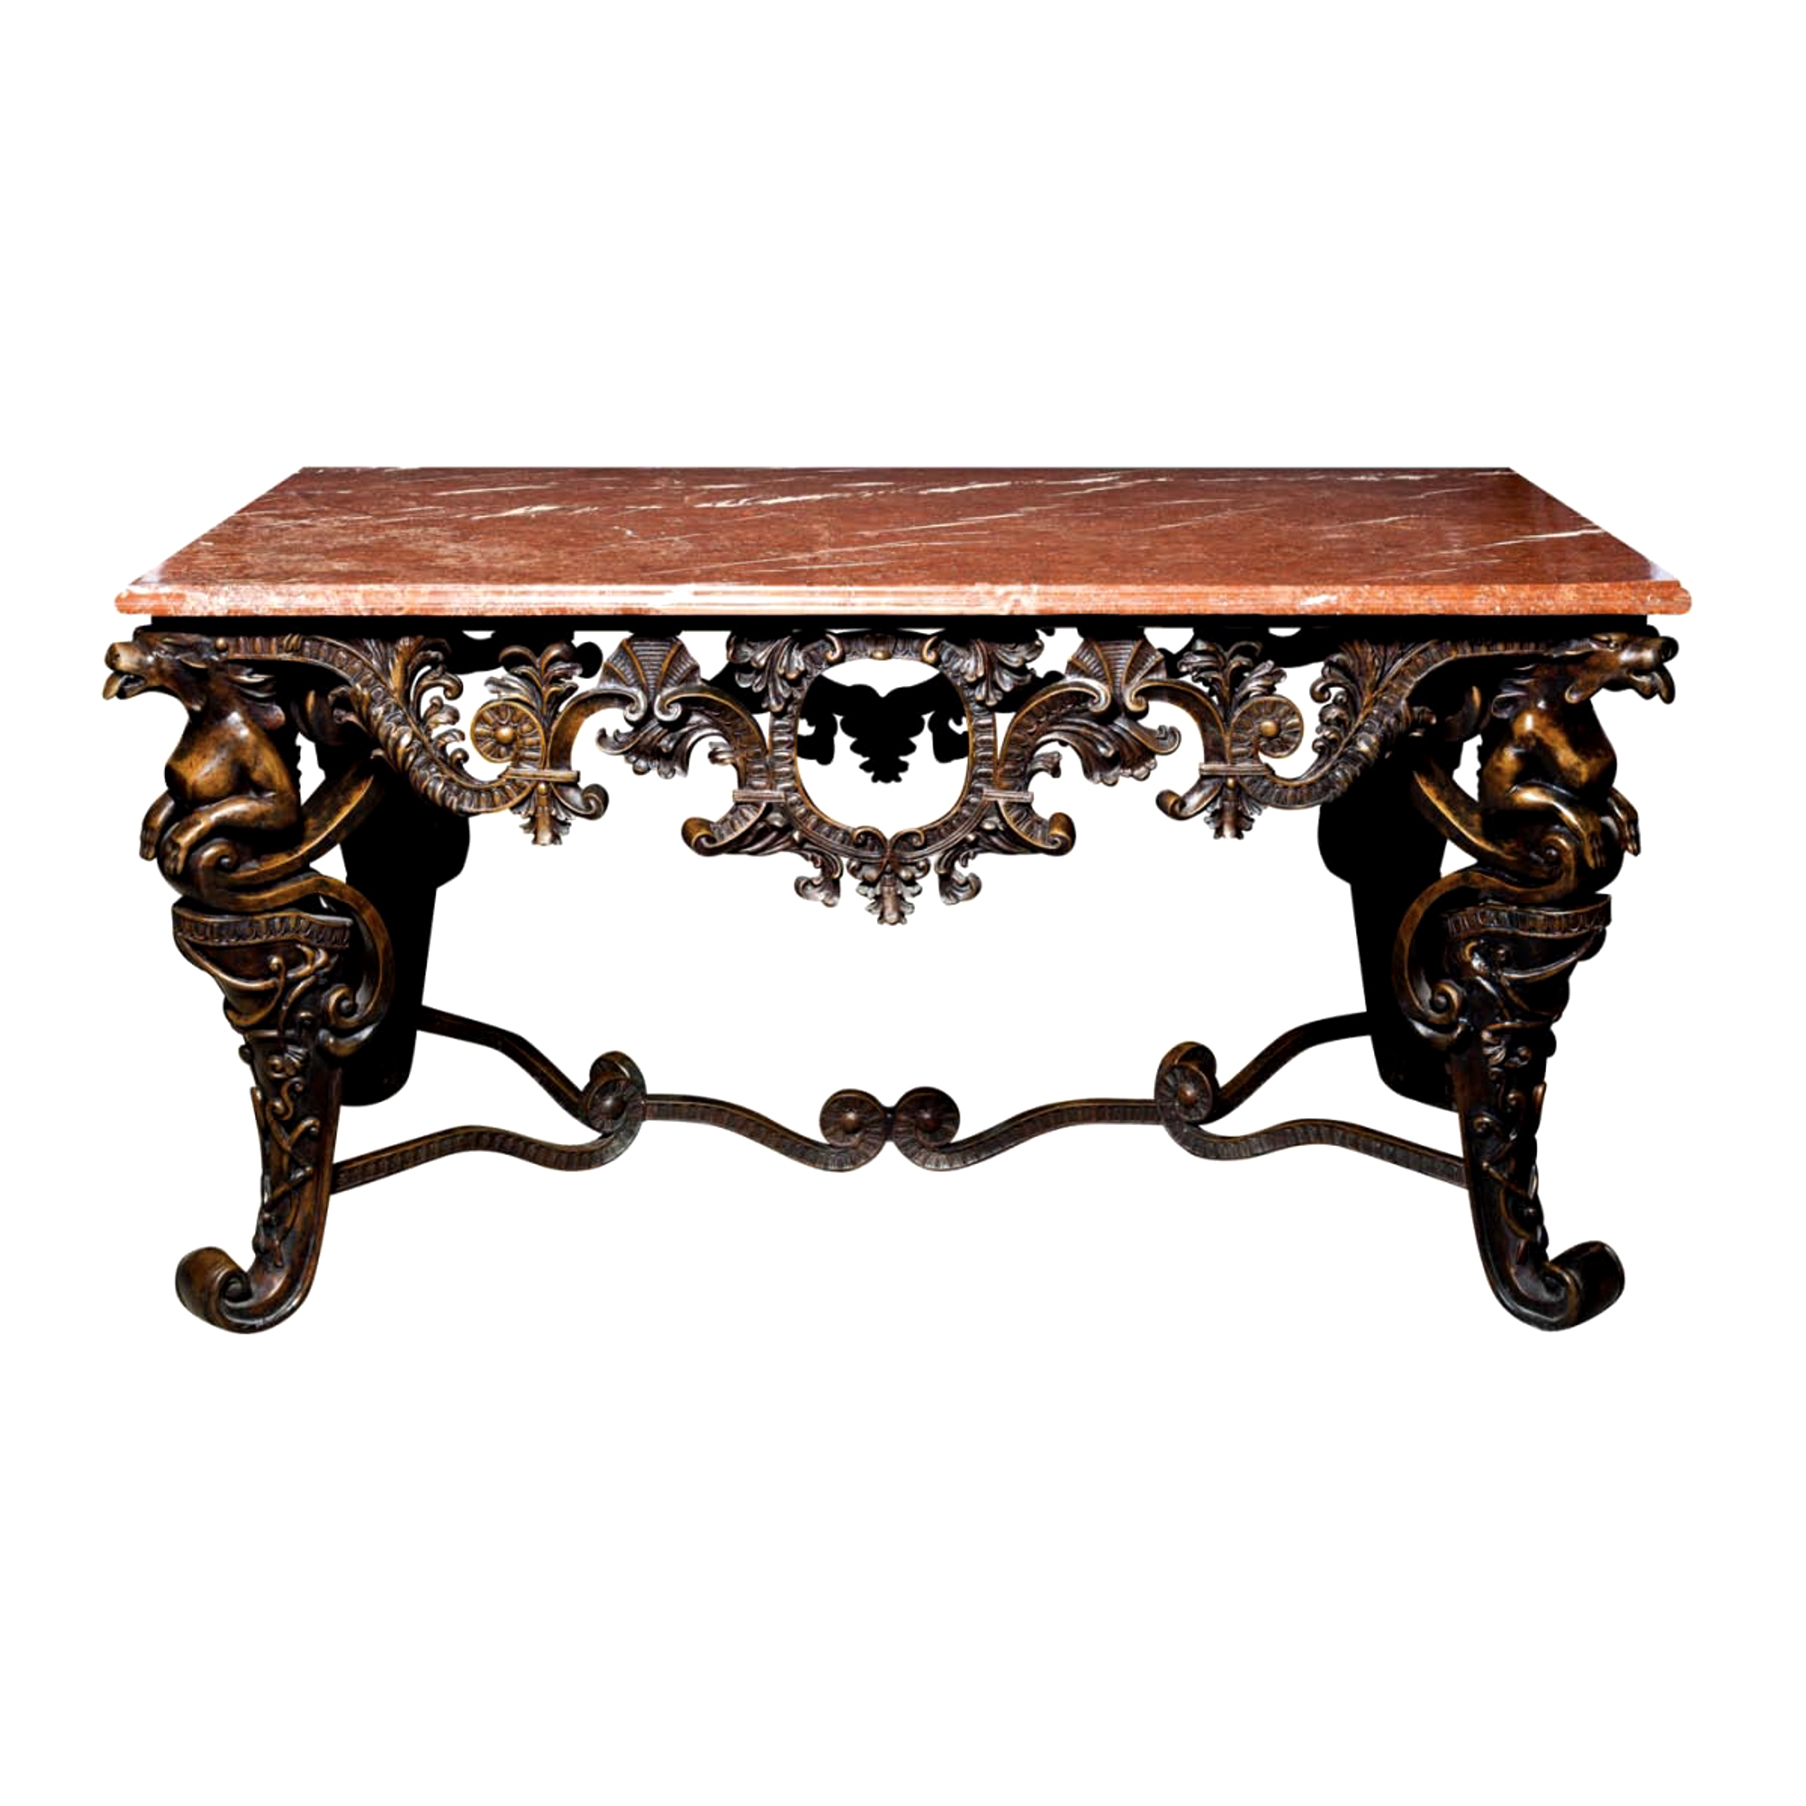 Srb88199 Bronze Console Table Marble Surface Metropolitan Galleries Inc